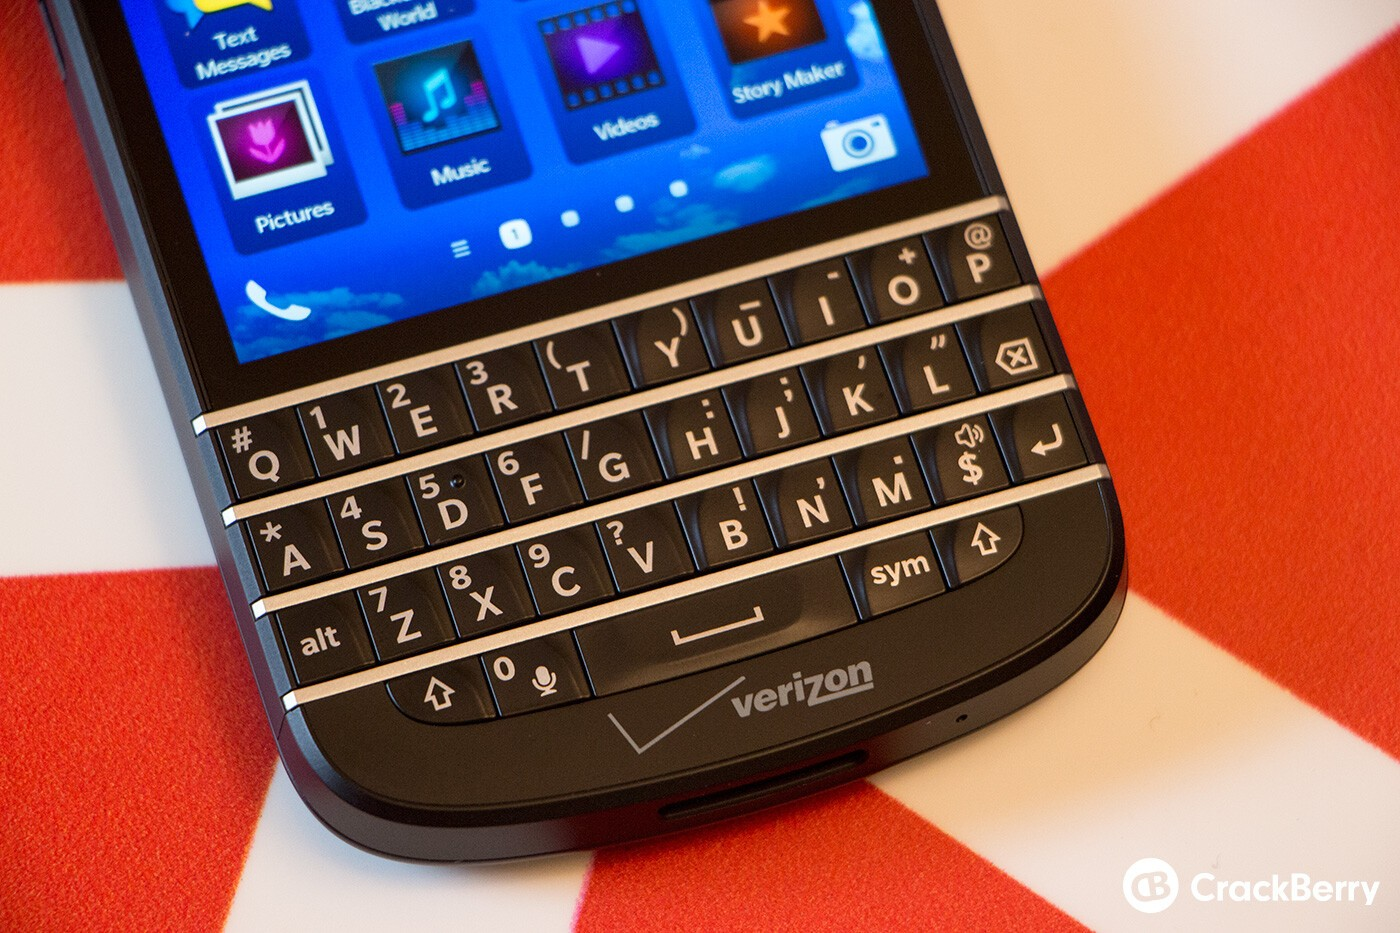 Verizon BlackBerry Q10